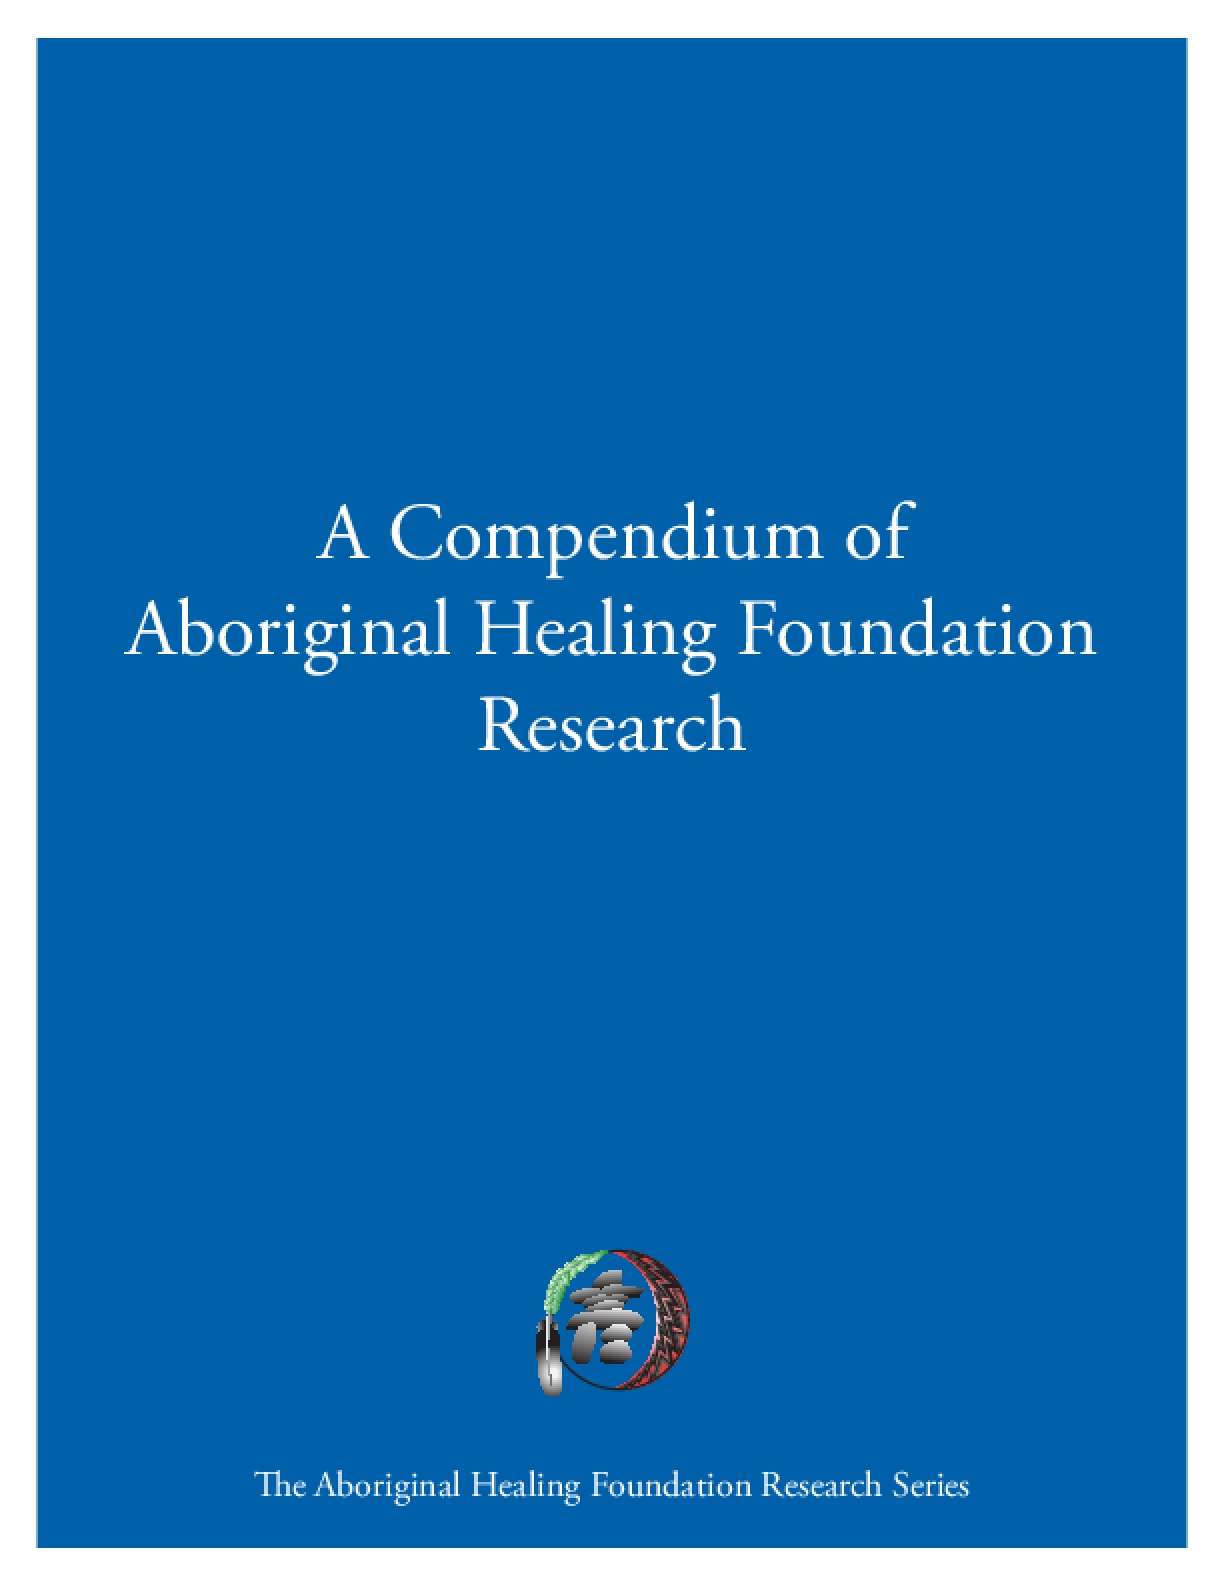 A Compendium of Aboriginal Healing Foundation Research